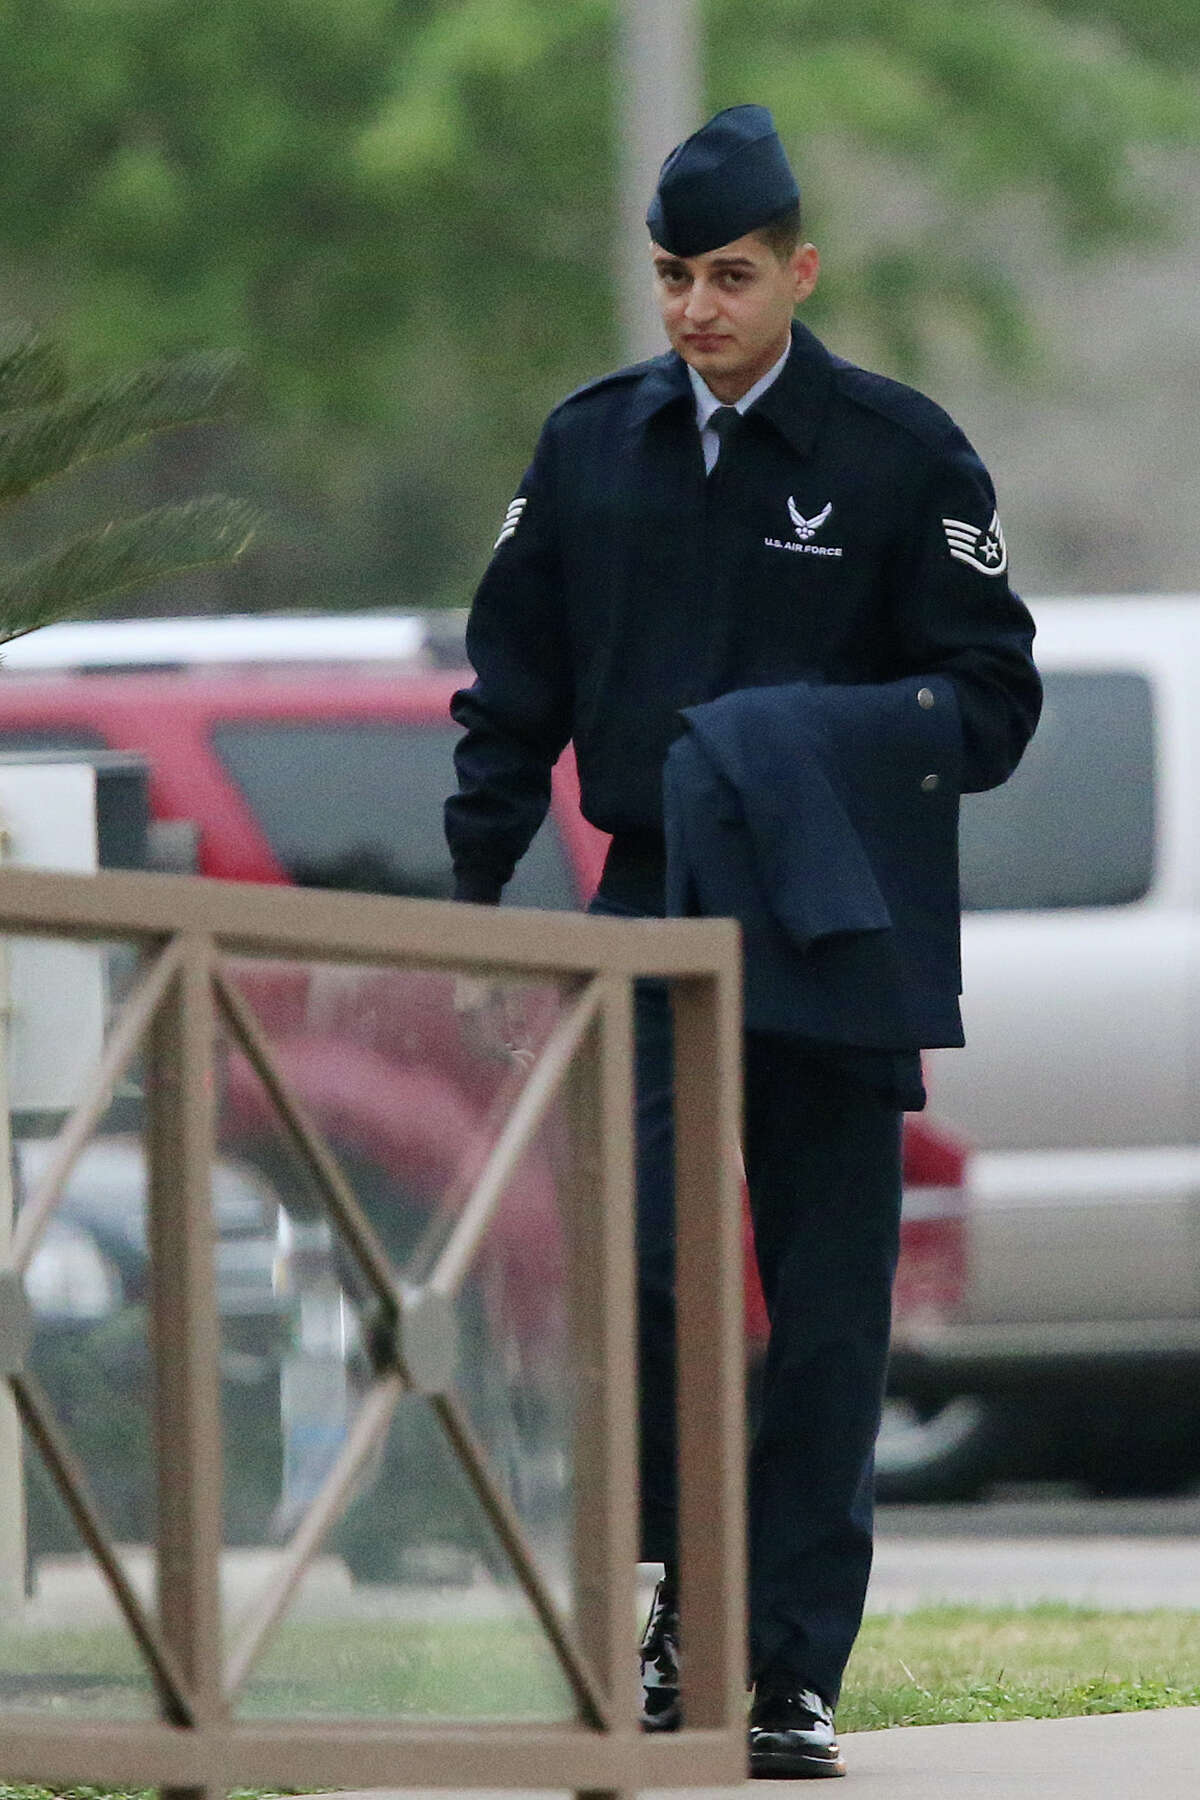 U.S. Air Force Staff Sgt. William Romero arrives for his court-martial at Lackland Air Force Base, Tuesday, April 2, 2013.